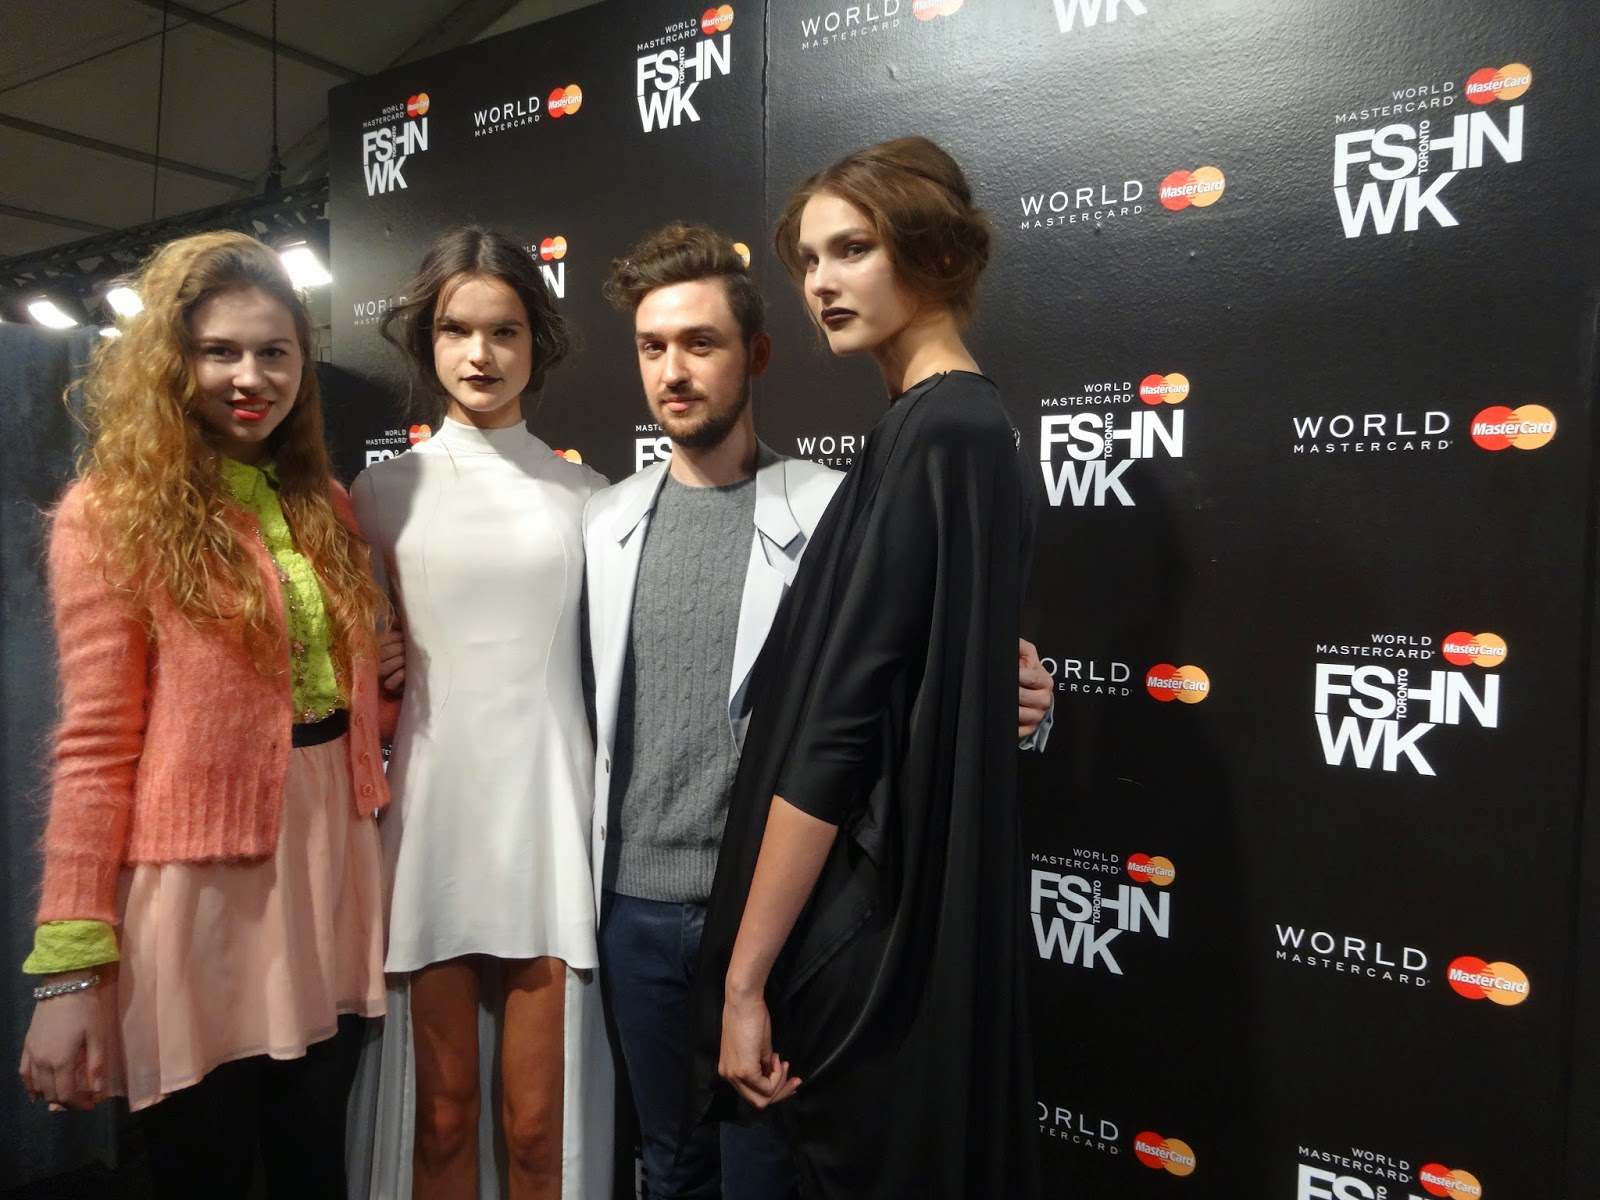 annie robinson, wmcfw, mathew gallagher